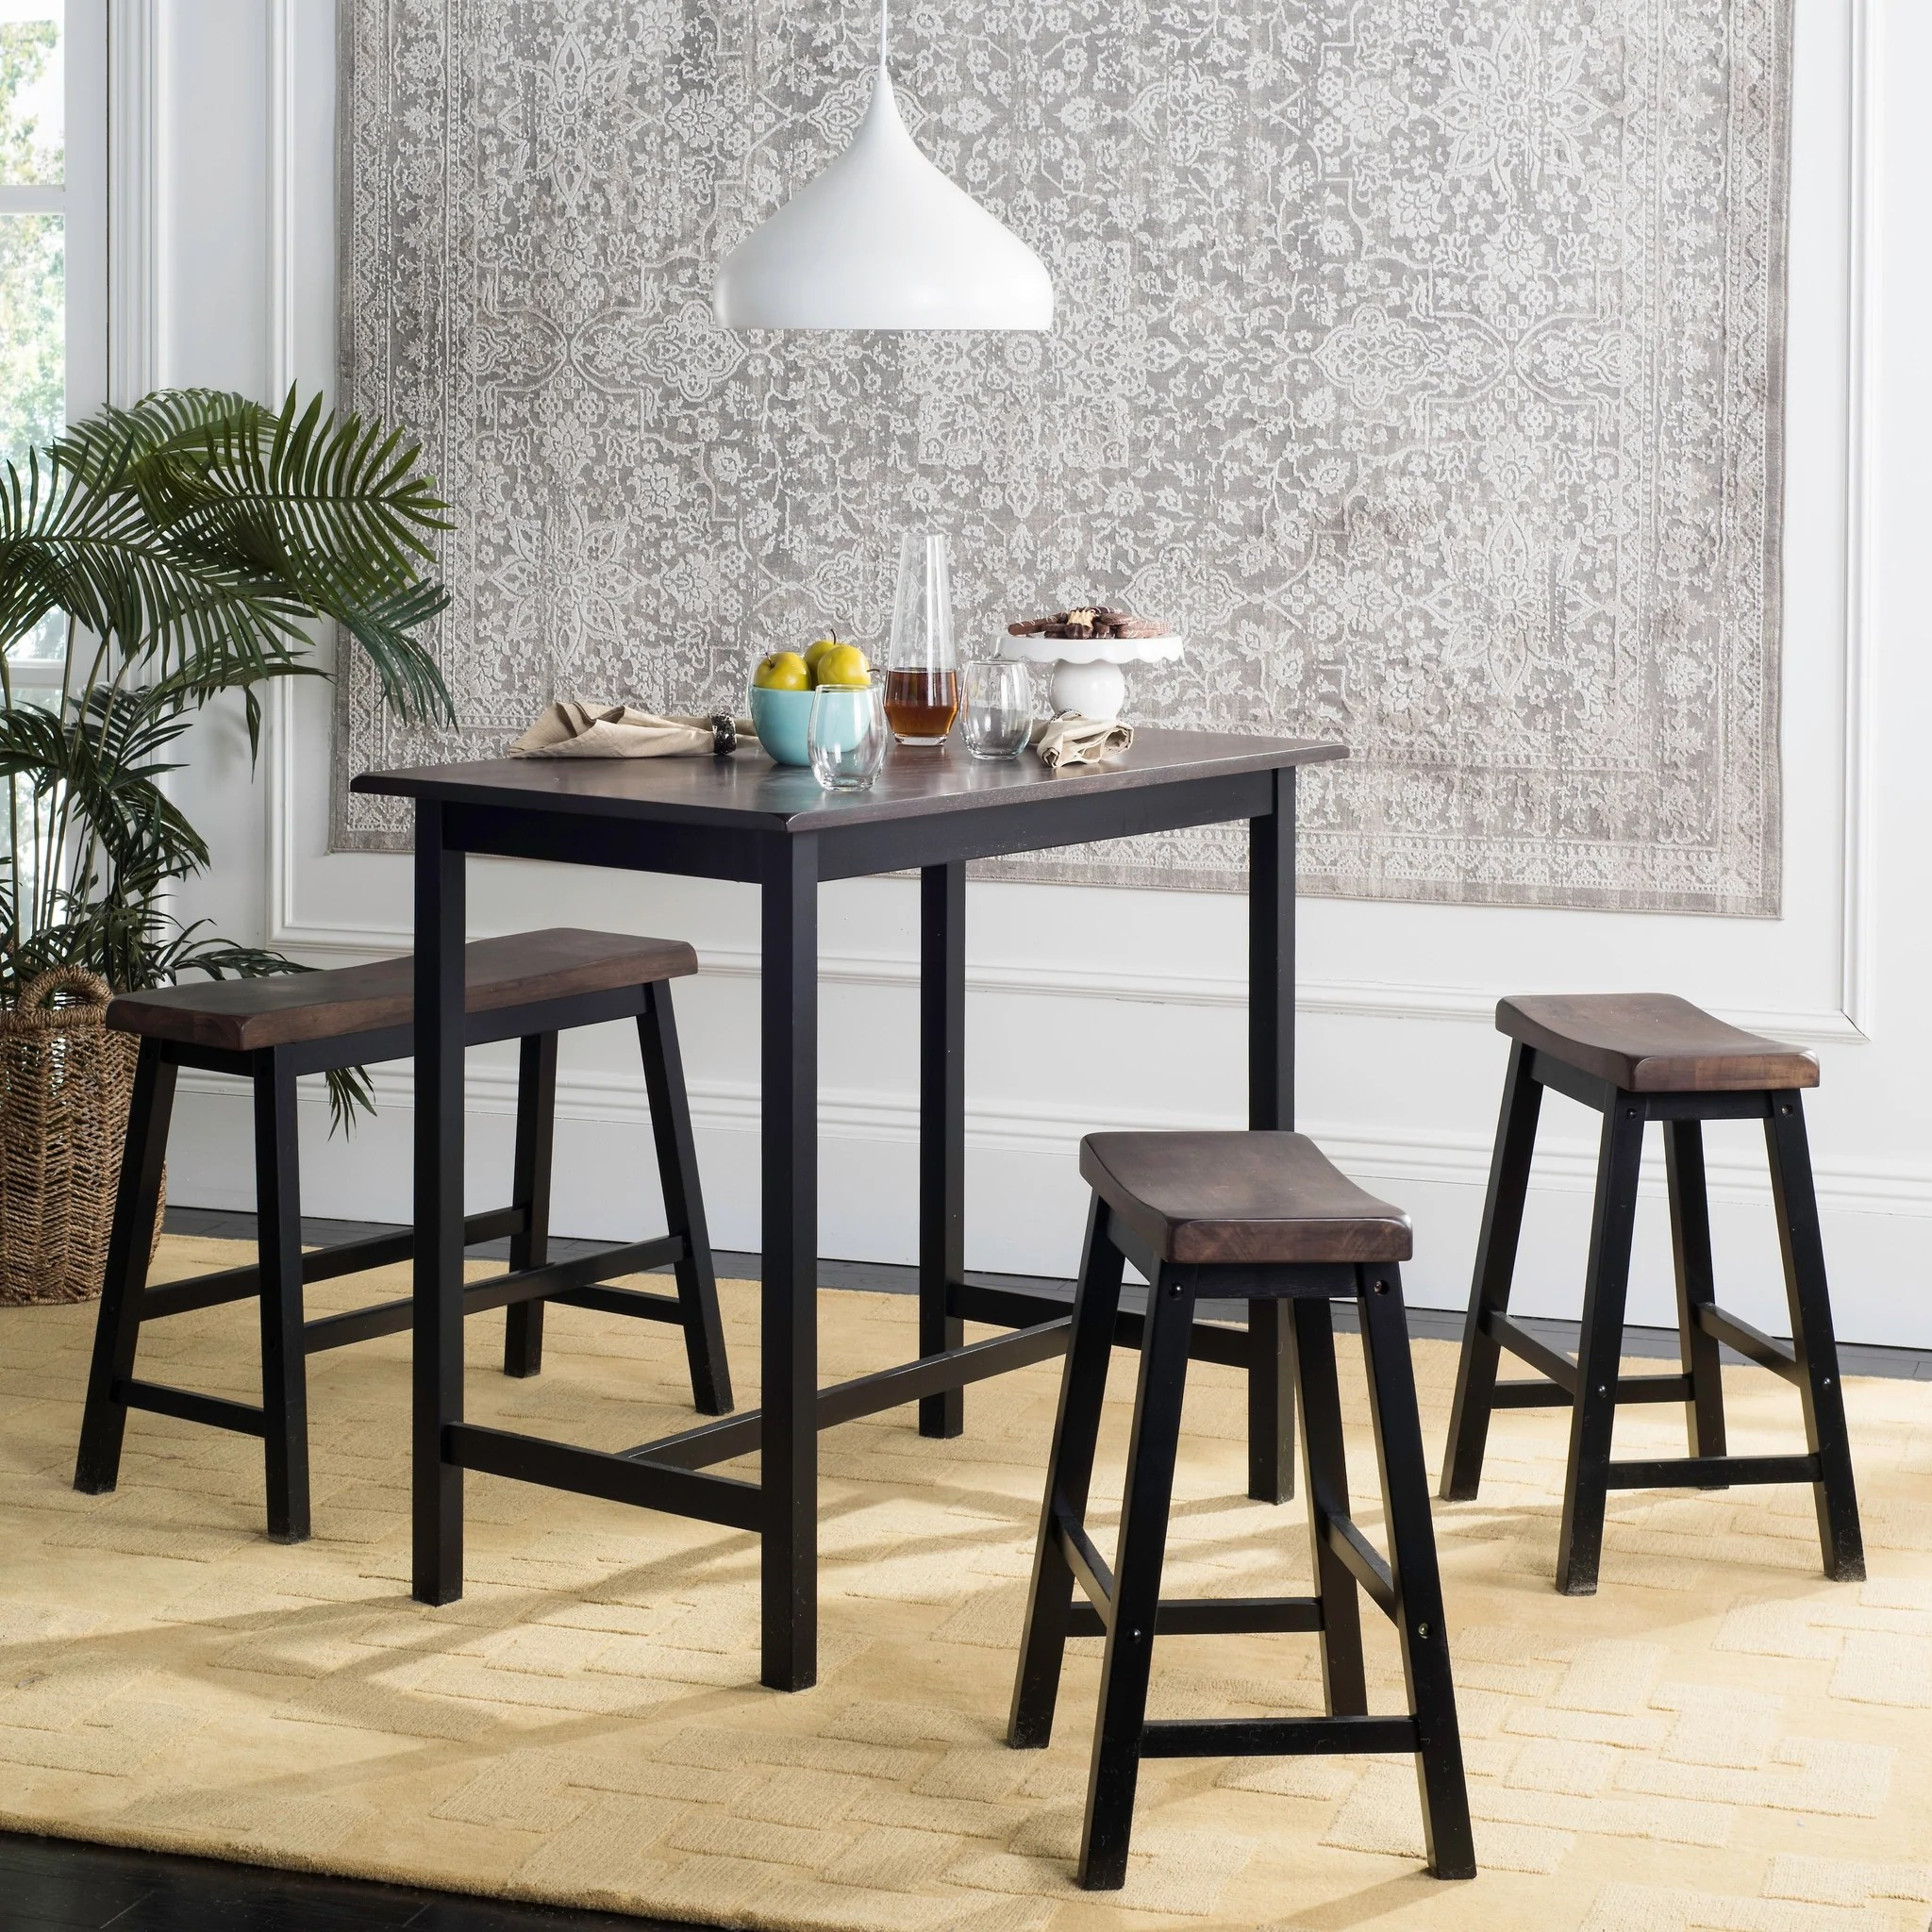 4 Piece Counter Height Bench And Stool Pub Set Handy